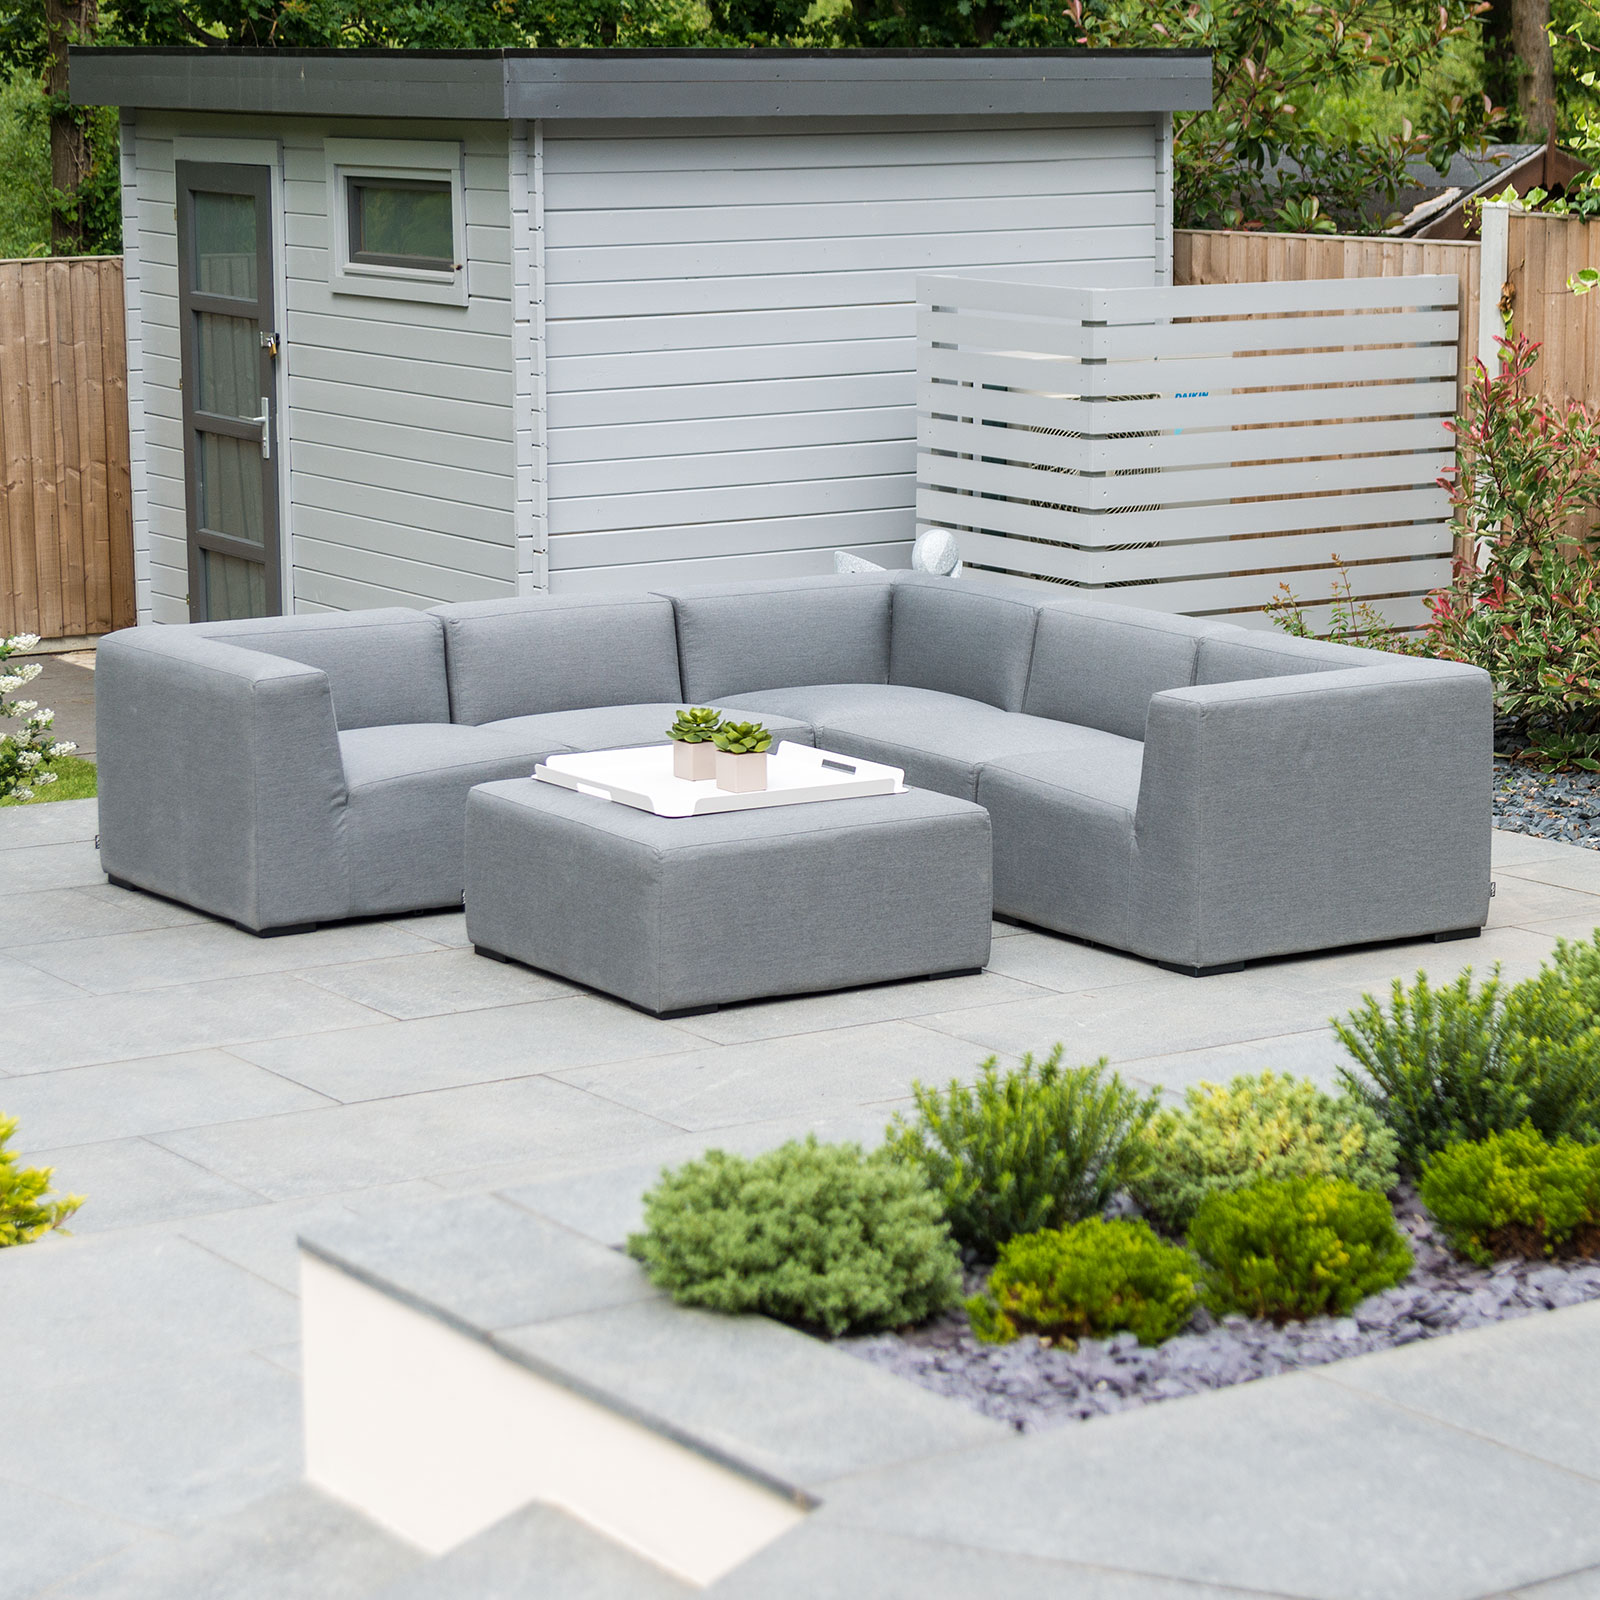 Toft Outdoor Fabric Corner Sofa Set With Stool